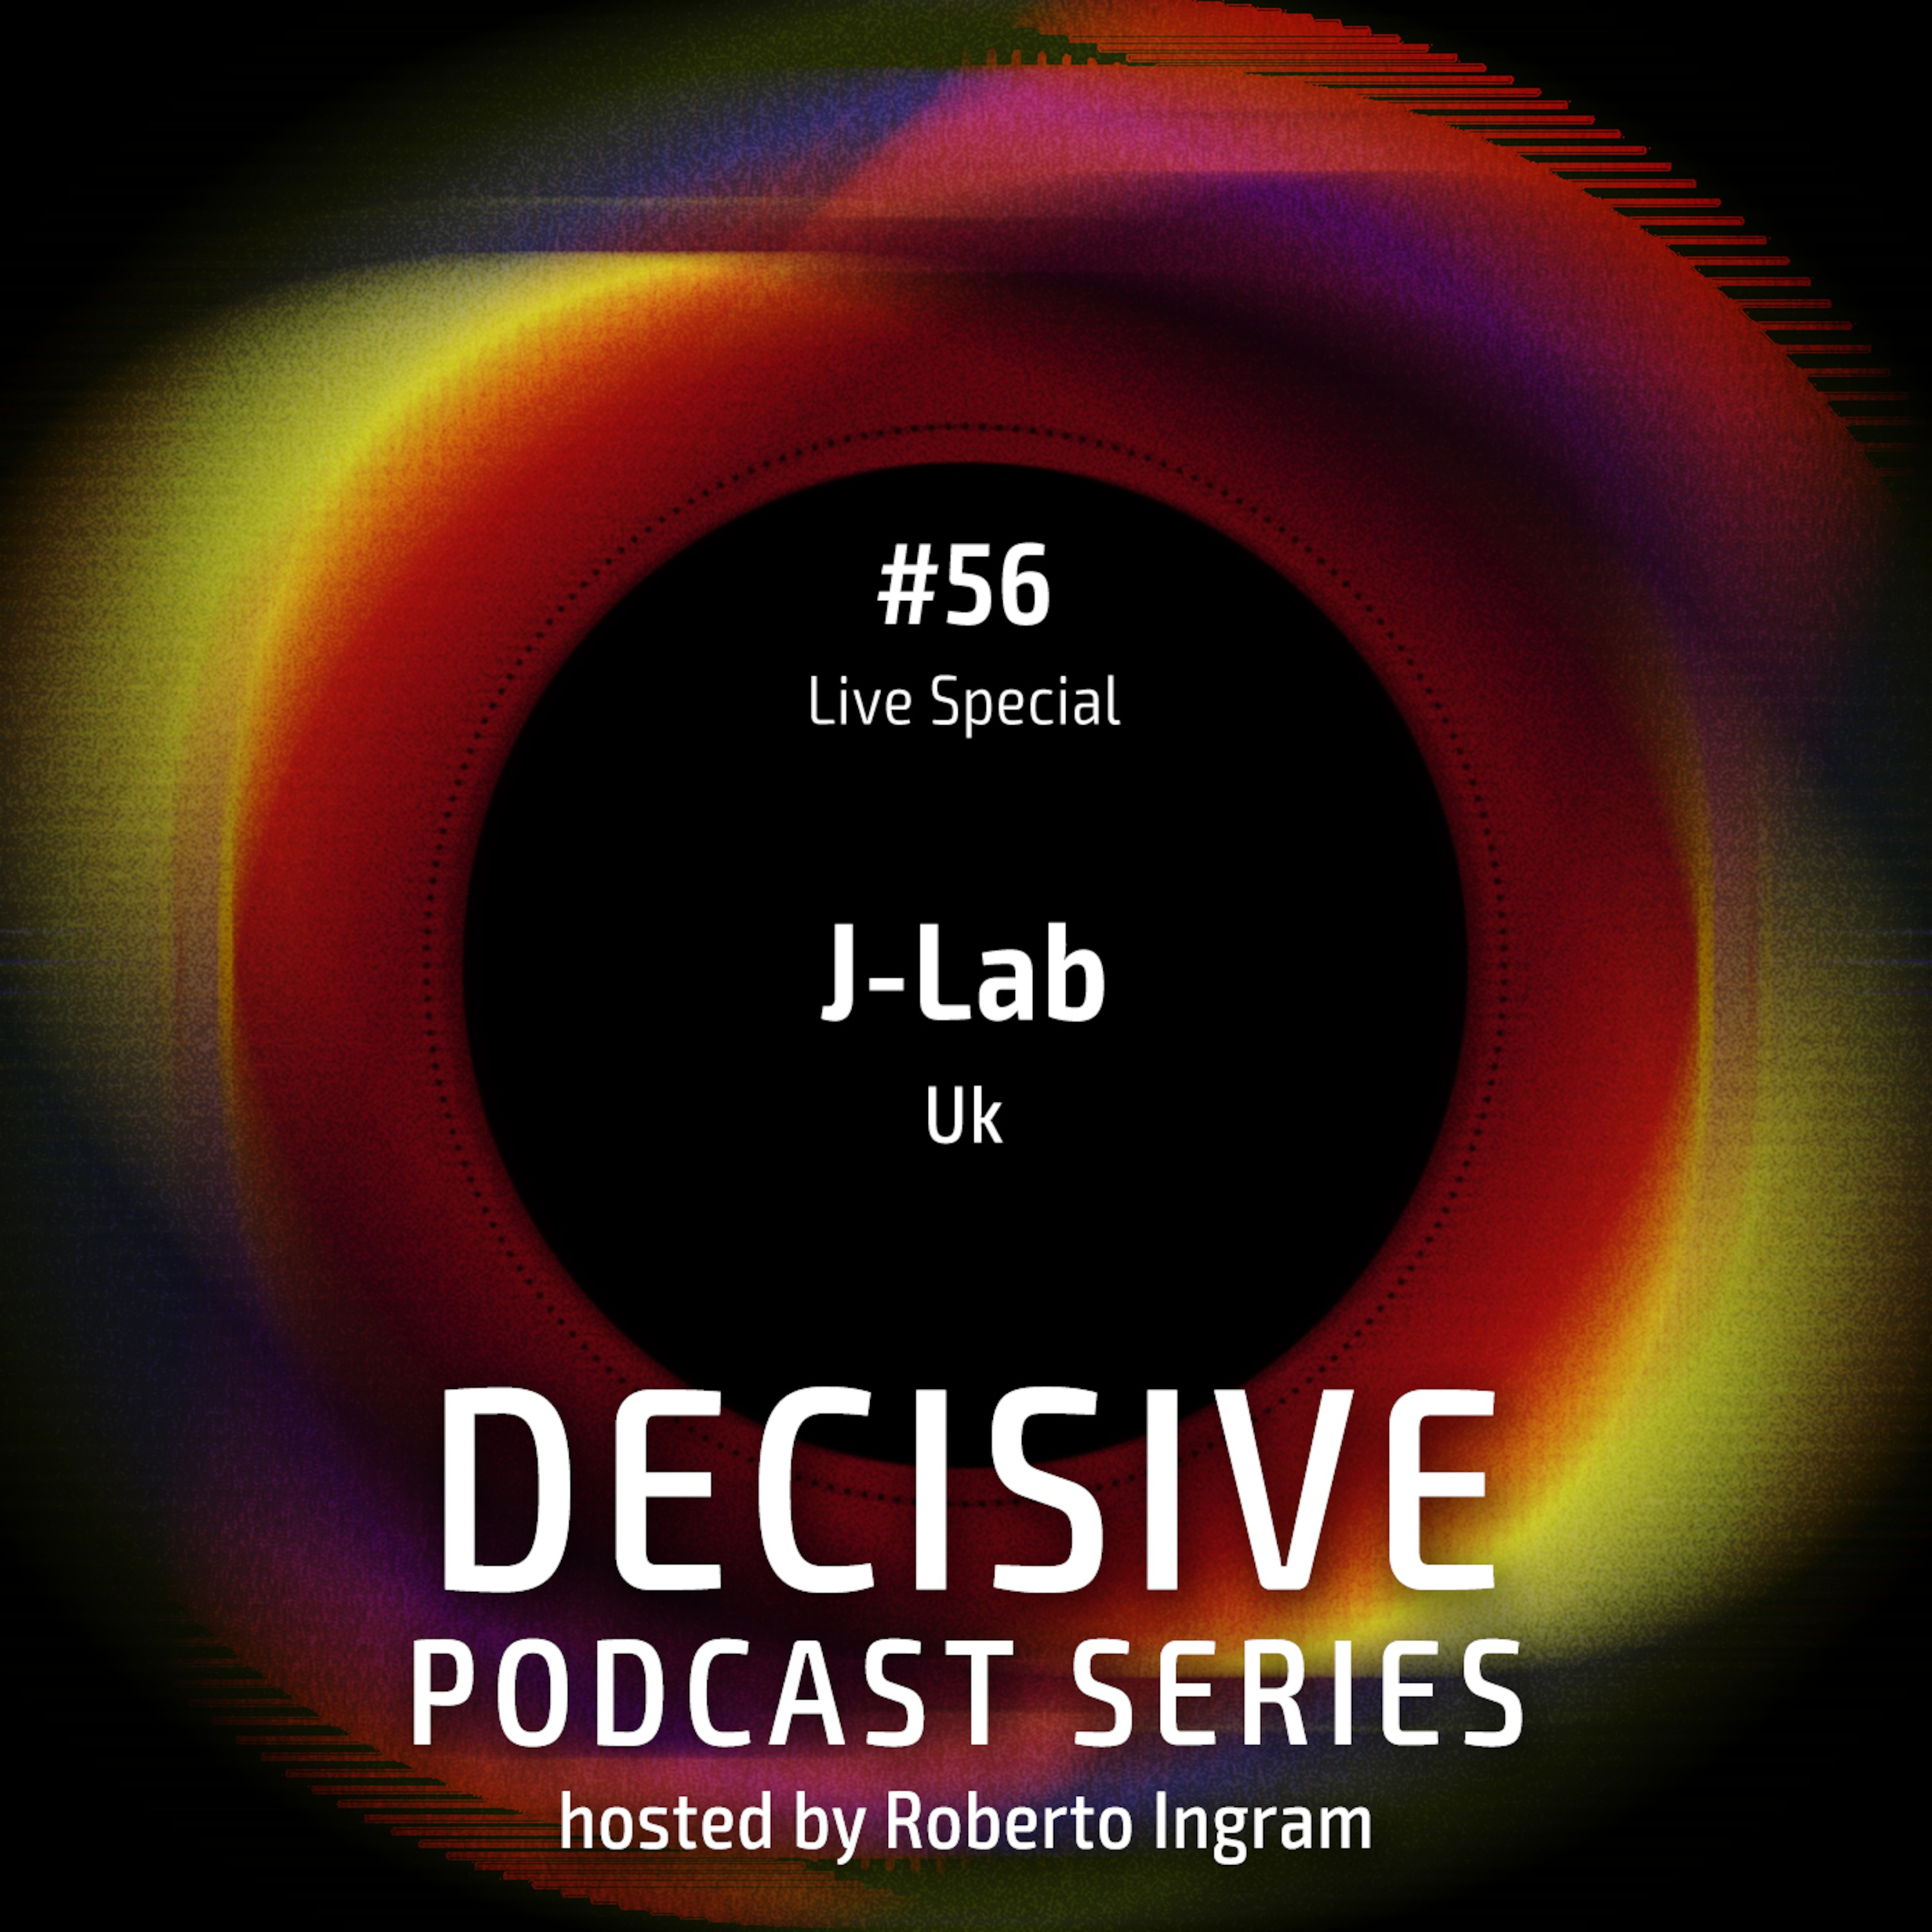 J Lab Live Special Decisive Podcast Series Podcast